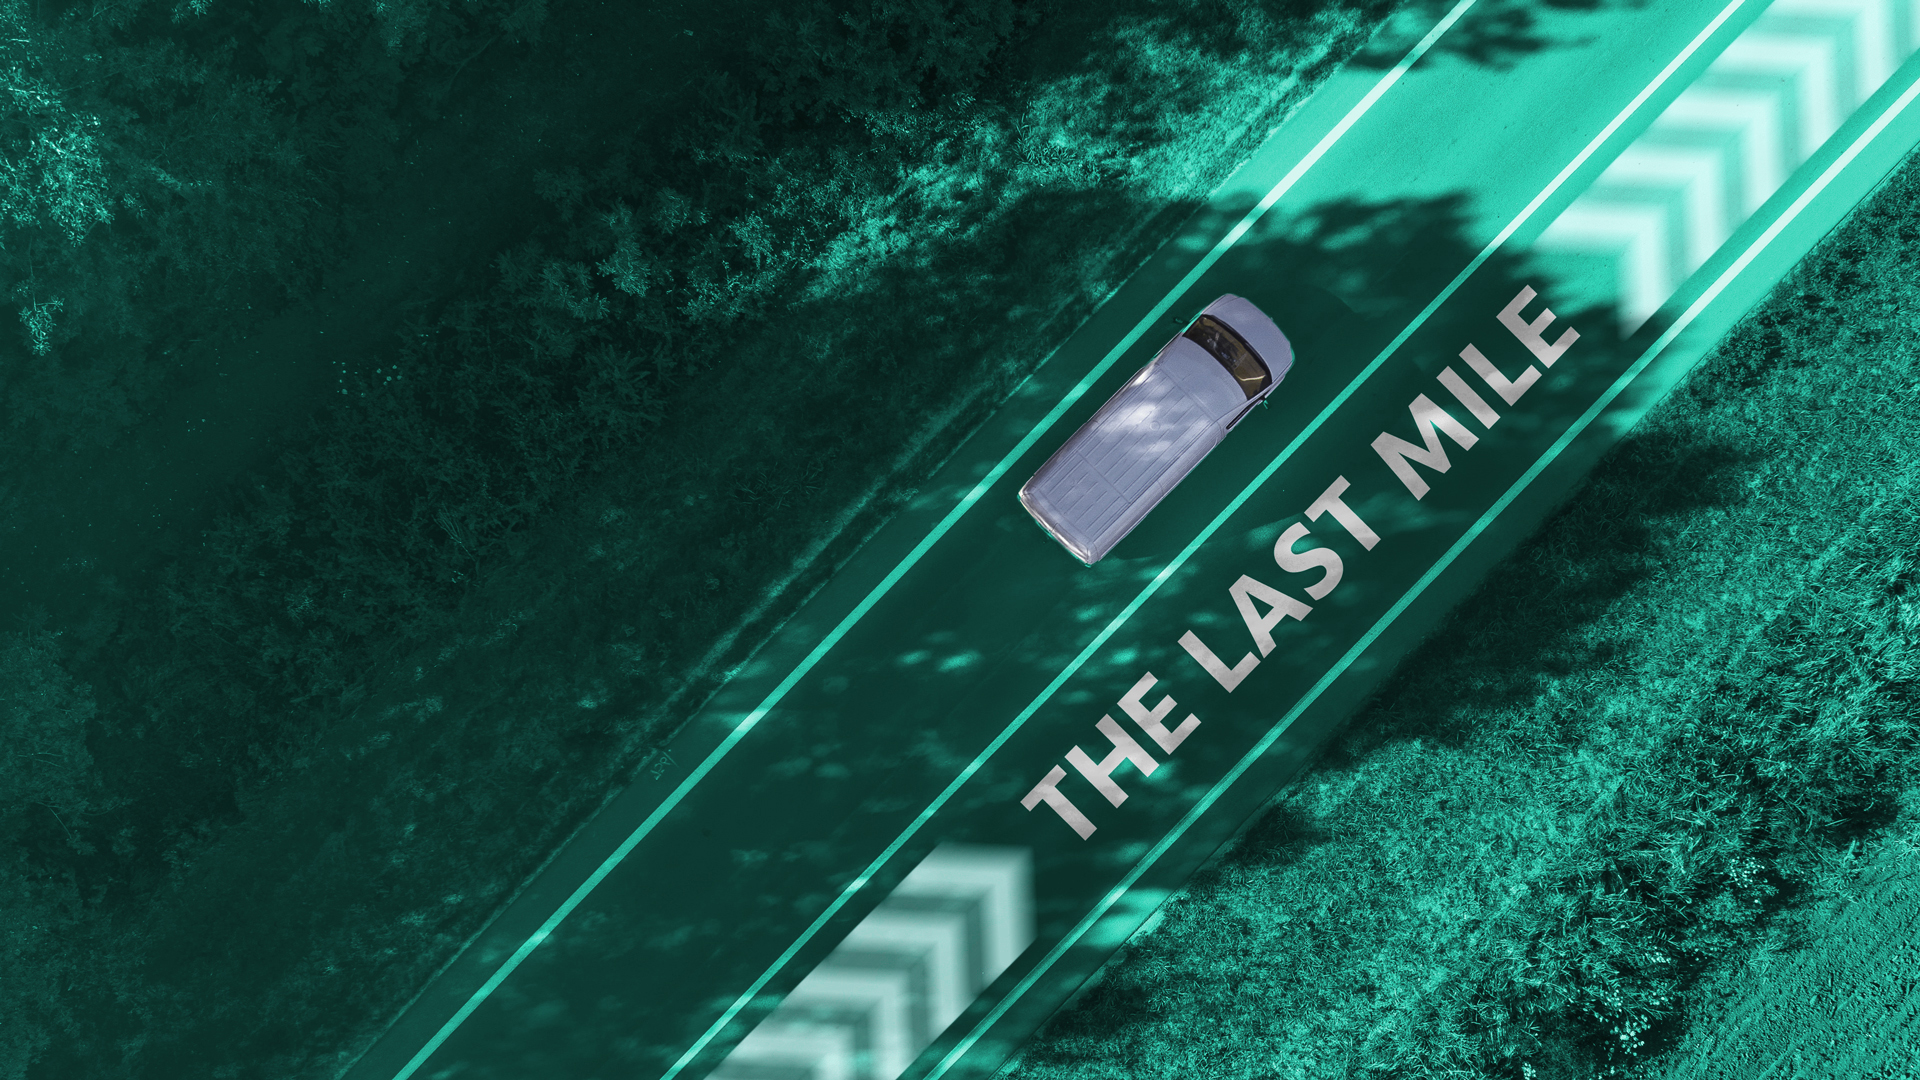 The Last Mile: How Can We Make it More Sustainable?